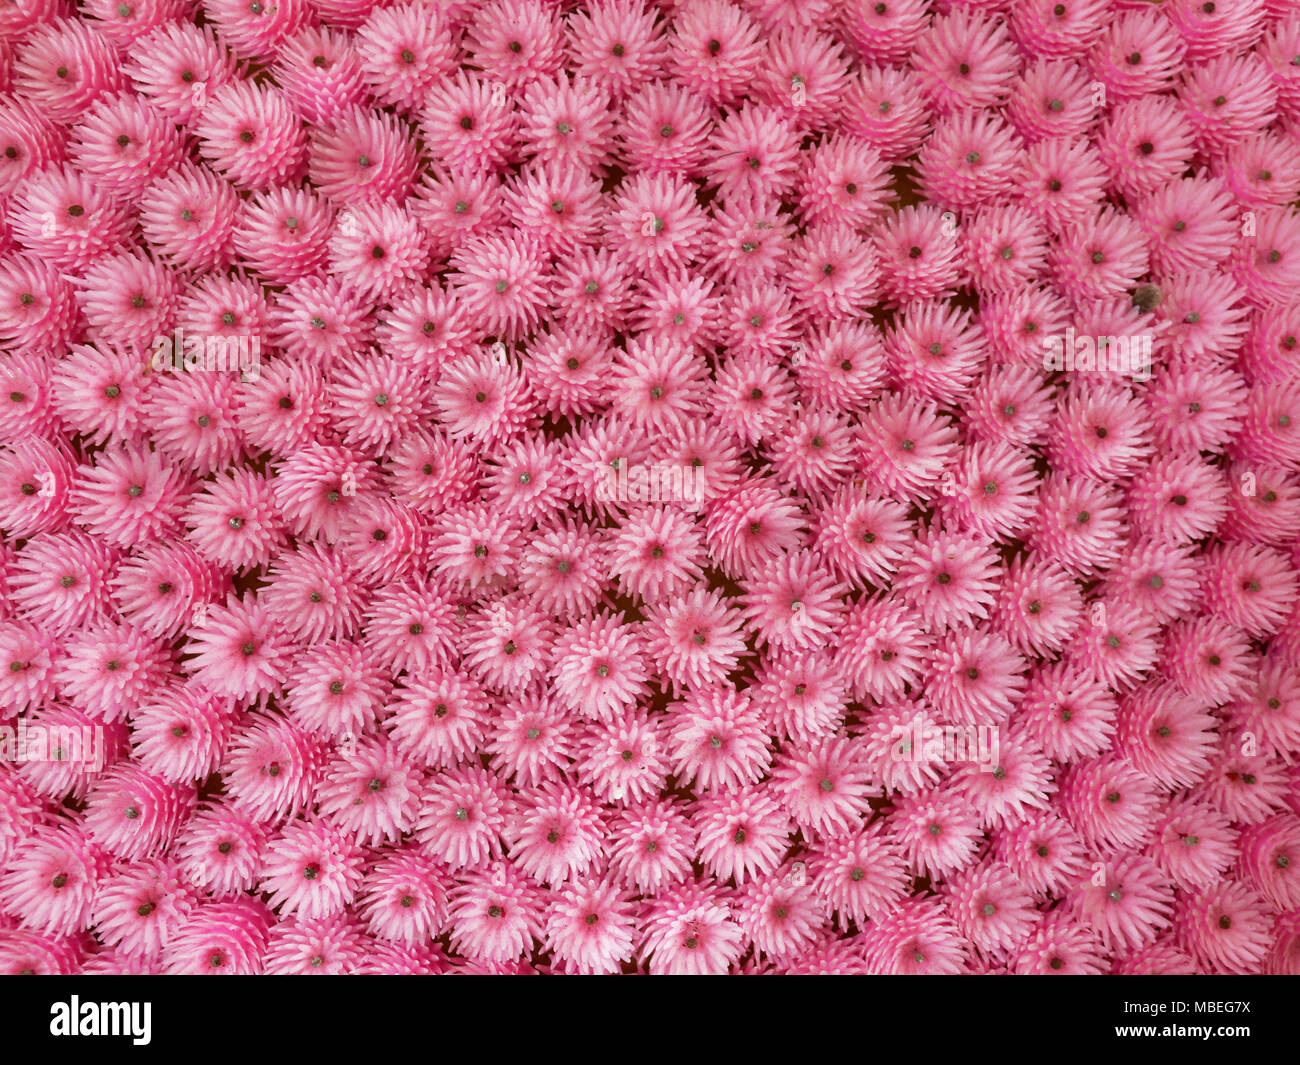 Pink artificial plastic flowers made as offering to buddha arranged pink artificial plastic flowers made as offering to buddha arranged in semi circle used as background pattern or texture in religious theme mightylinksfo